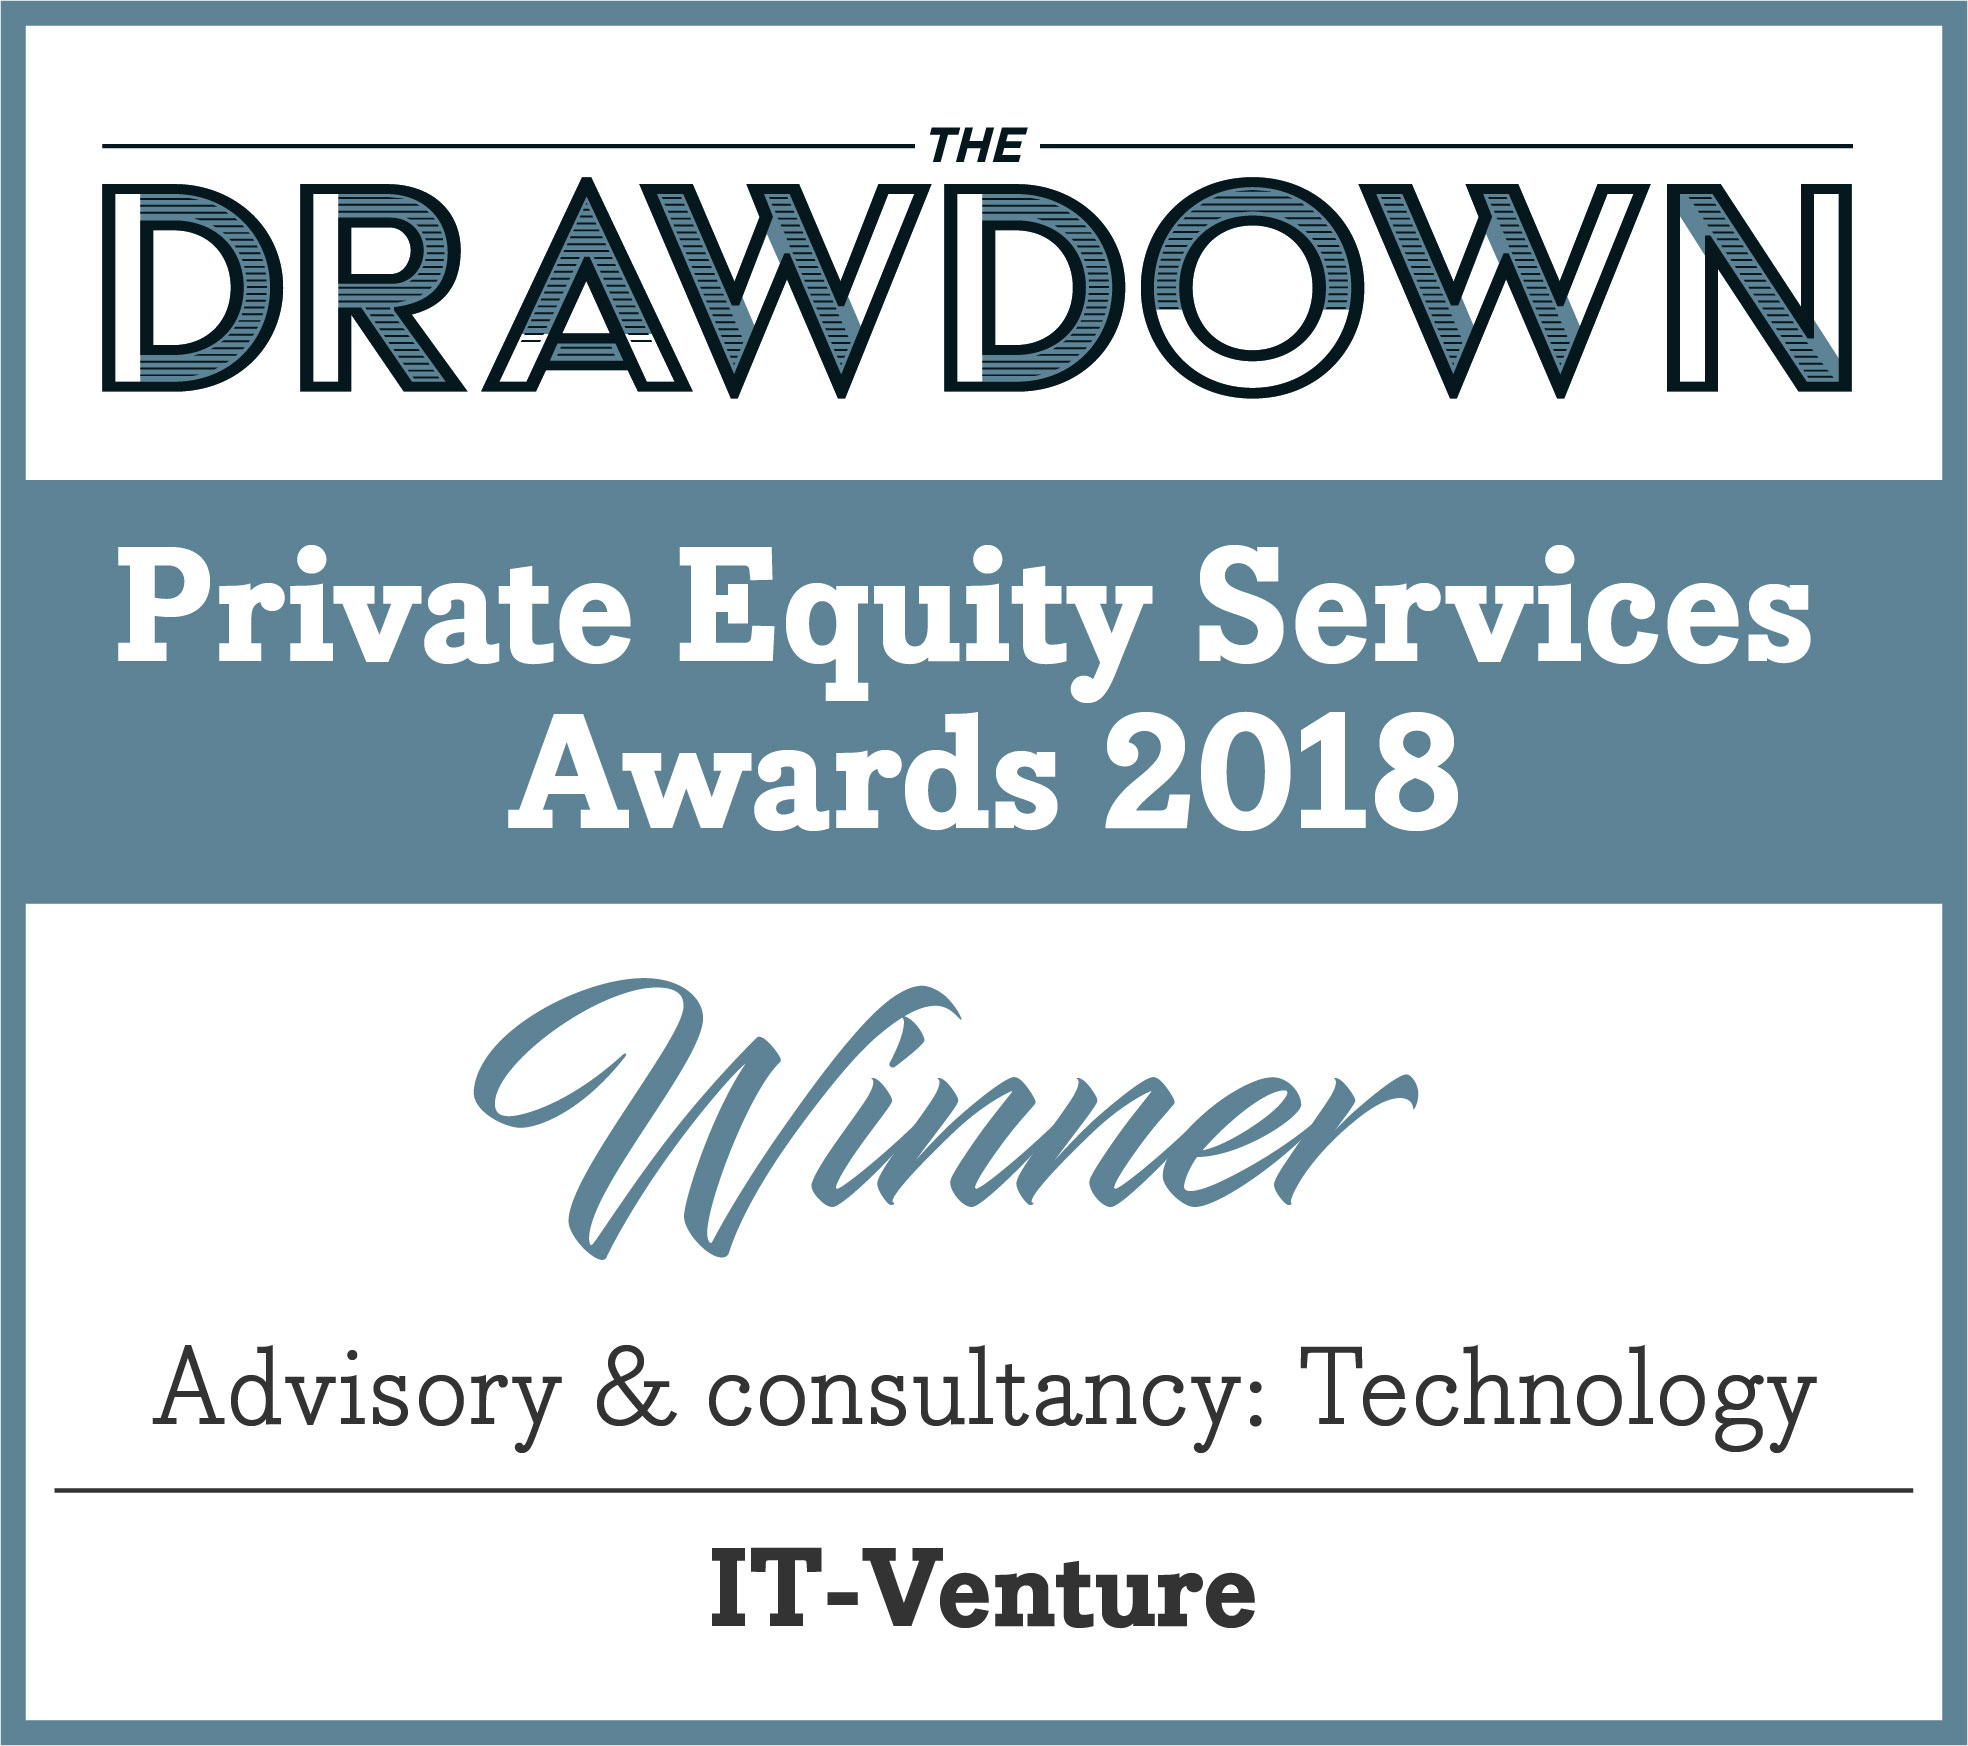 IT-Venture - The Drawdown Private Equity Services Awards 2018 - WINNER LOGO.jpg